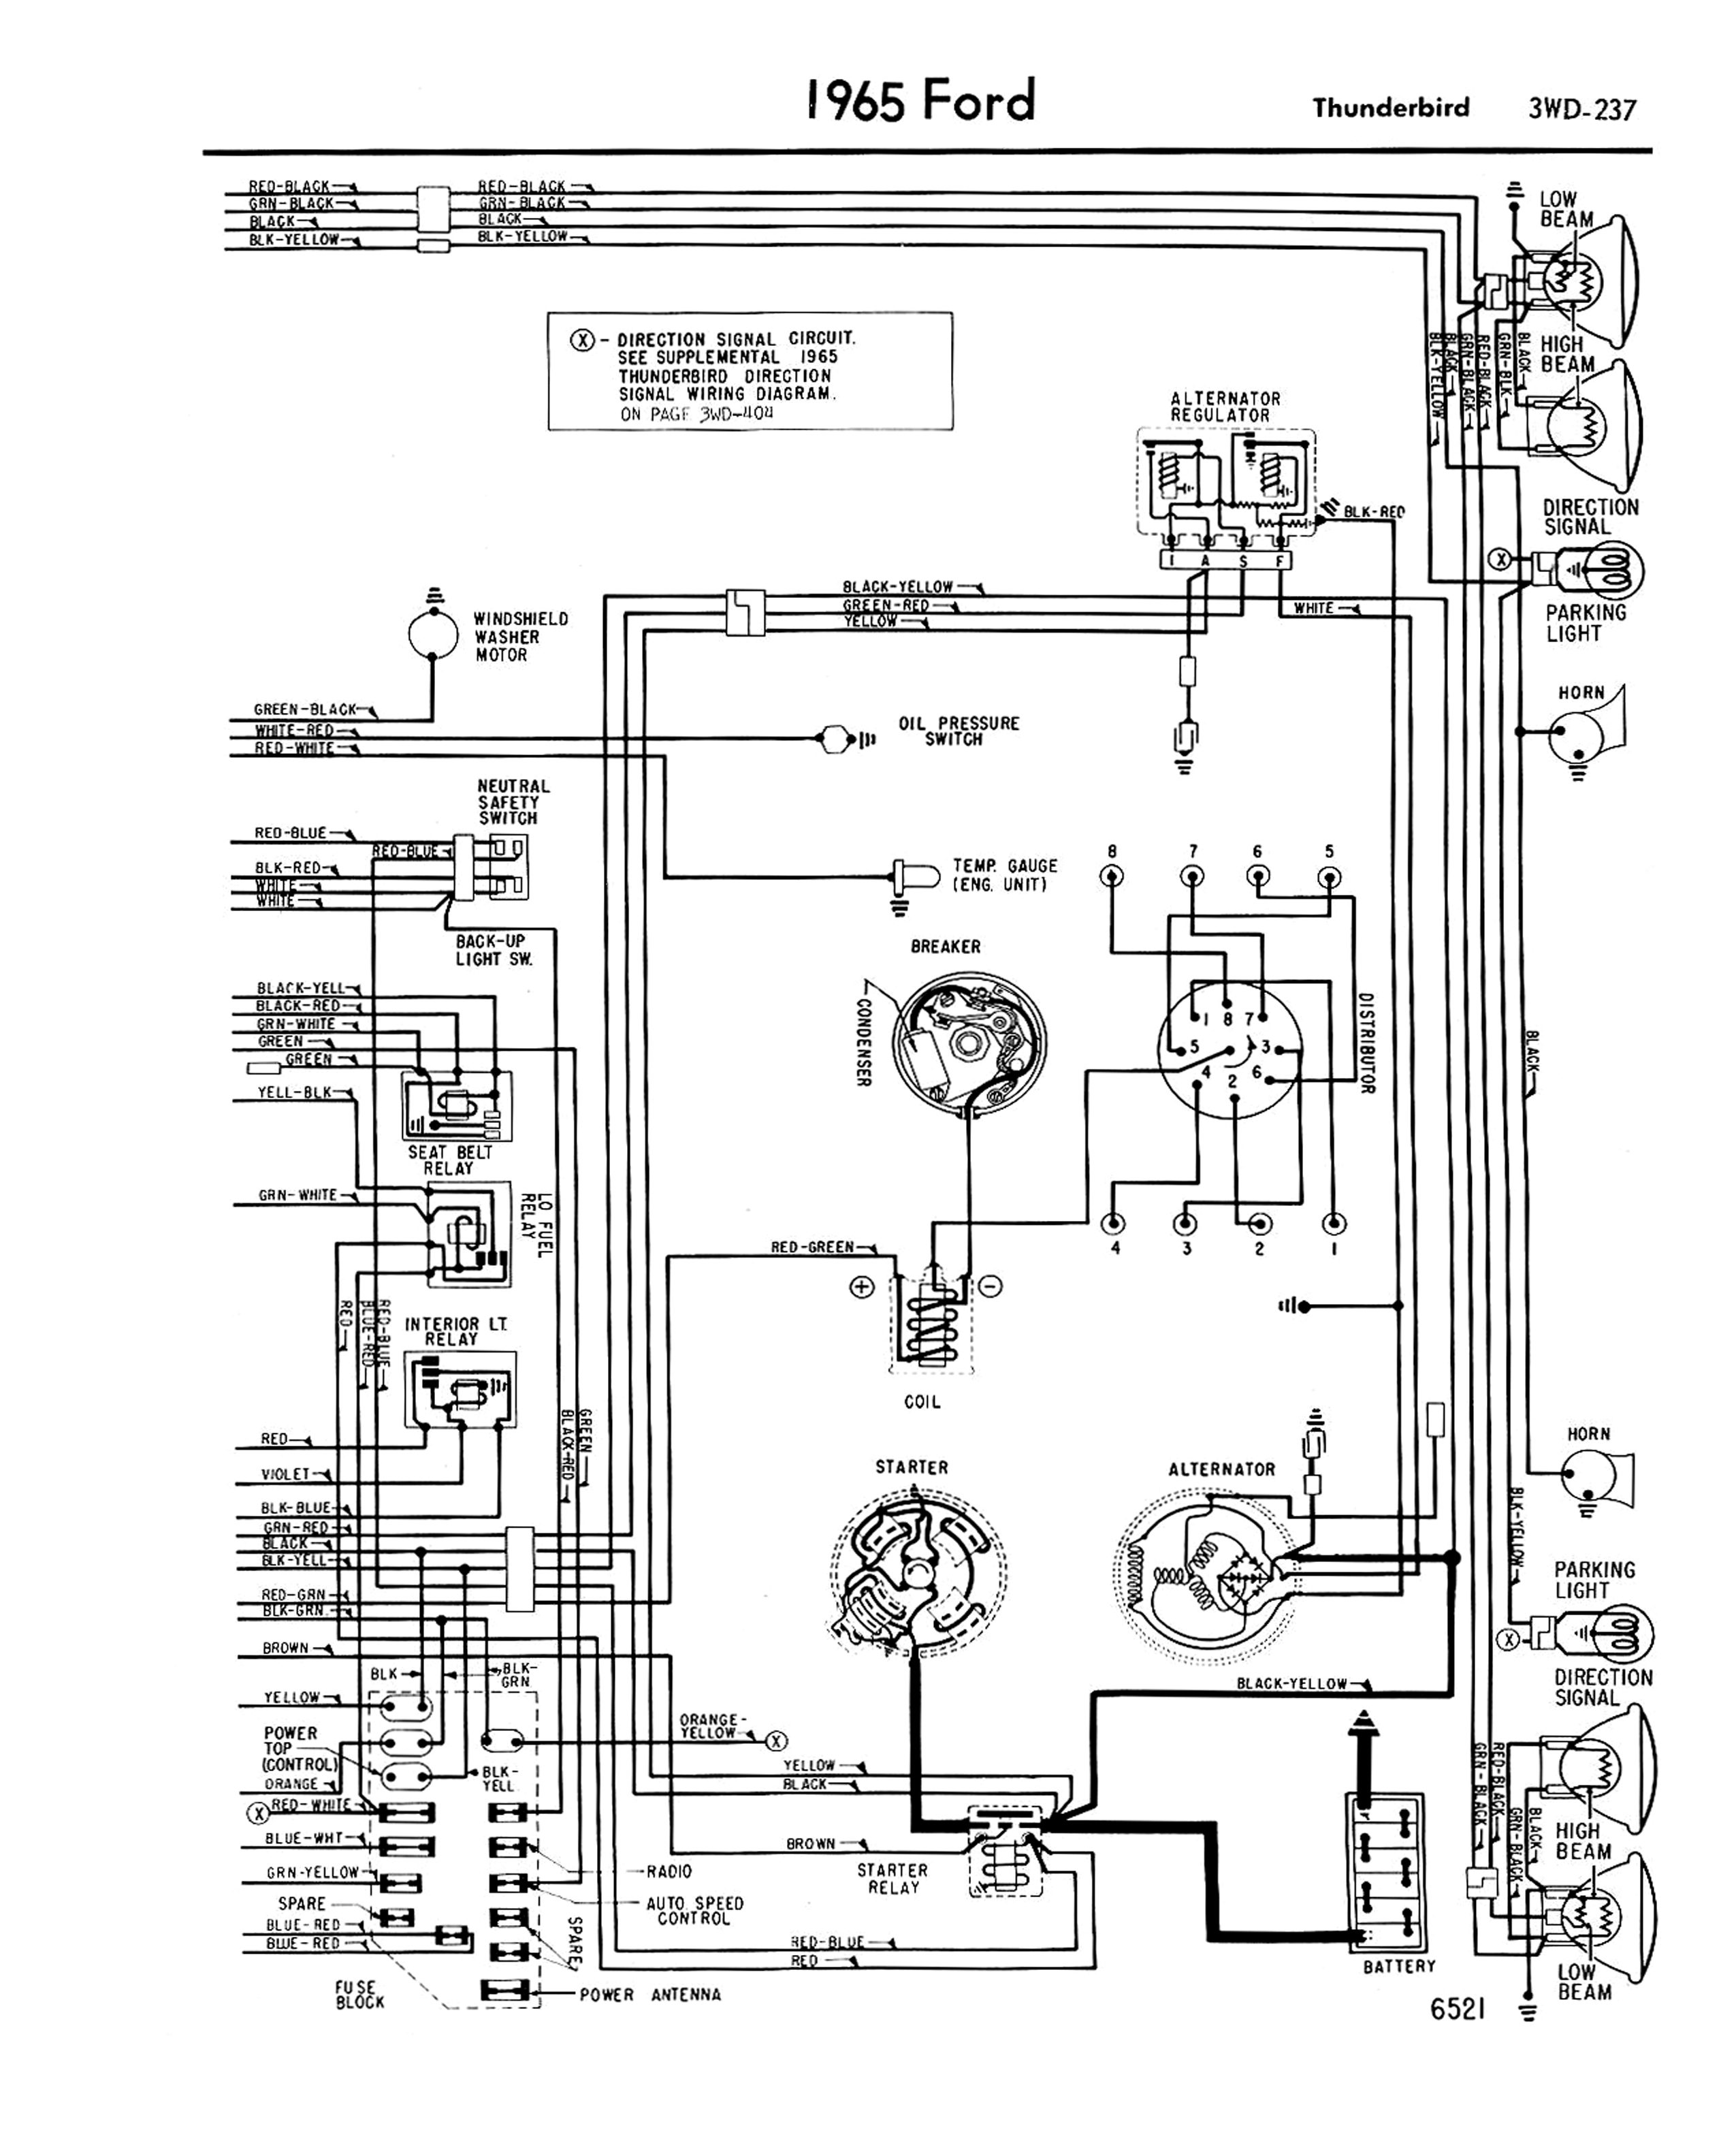 1965 Cadillac Directional Signal Switch Wiring Diagram Great 1964 Ac 1968 Ford Turn Todays Rh 4 8 9 1813weddingbarn Com Schematics